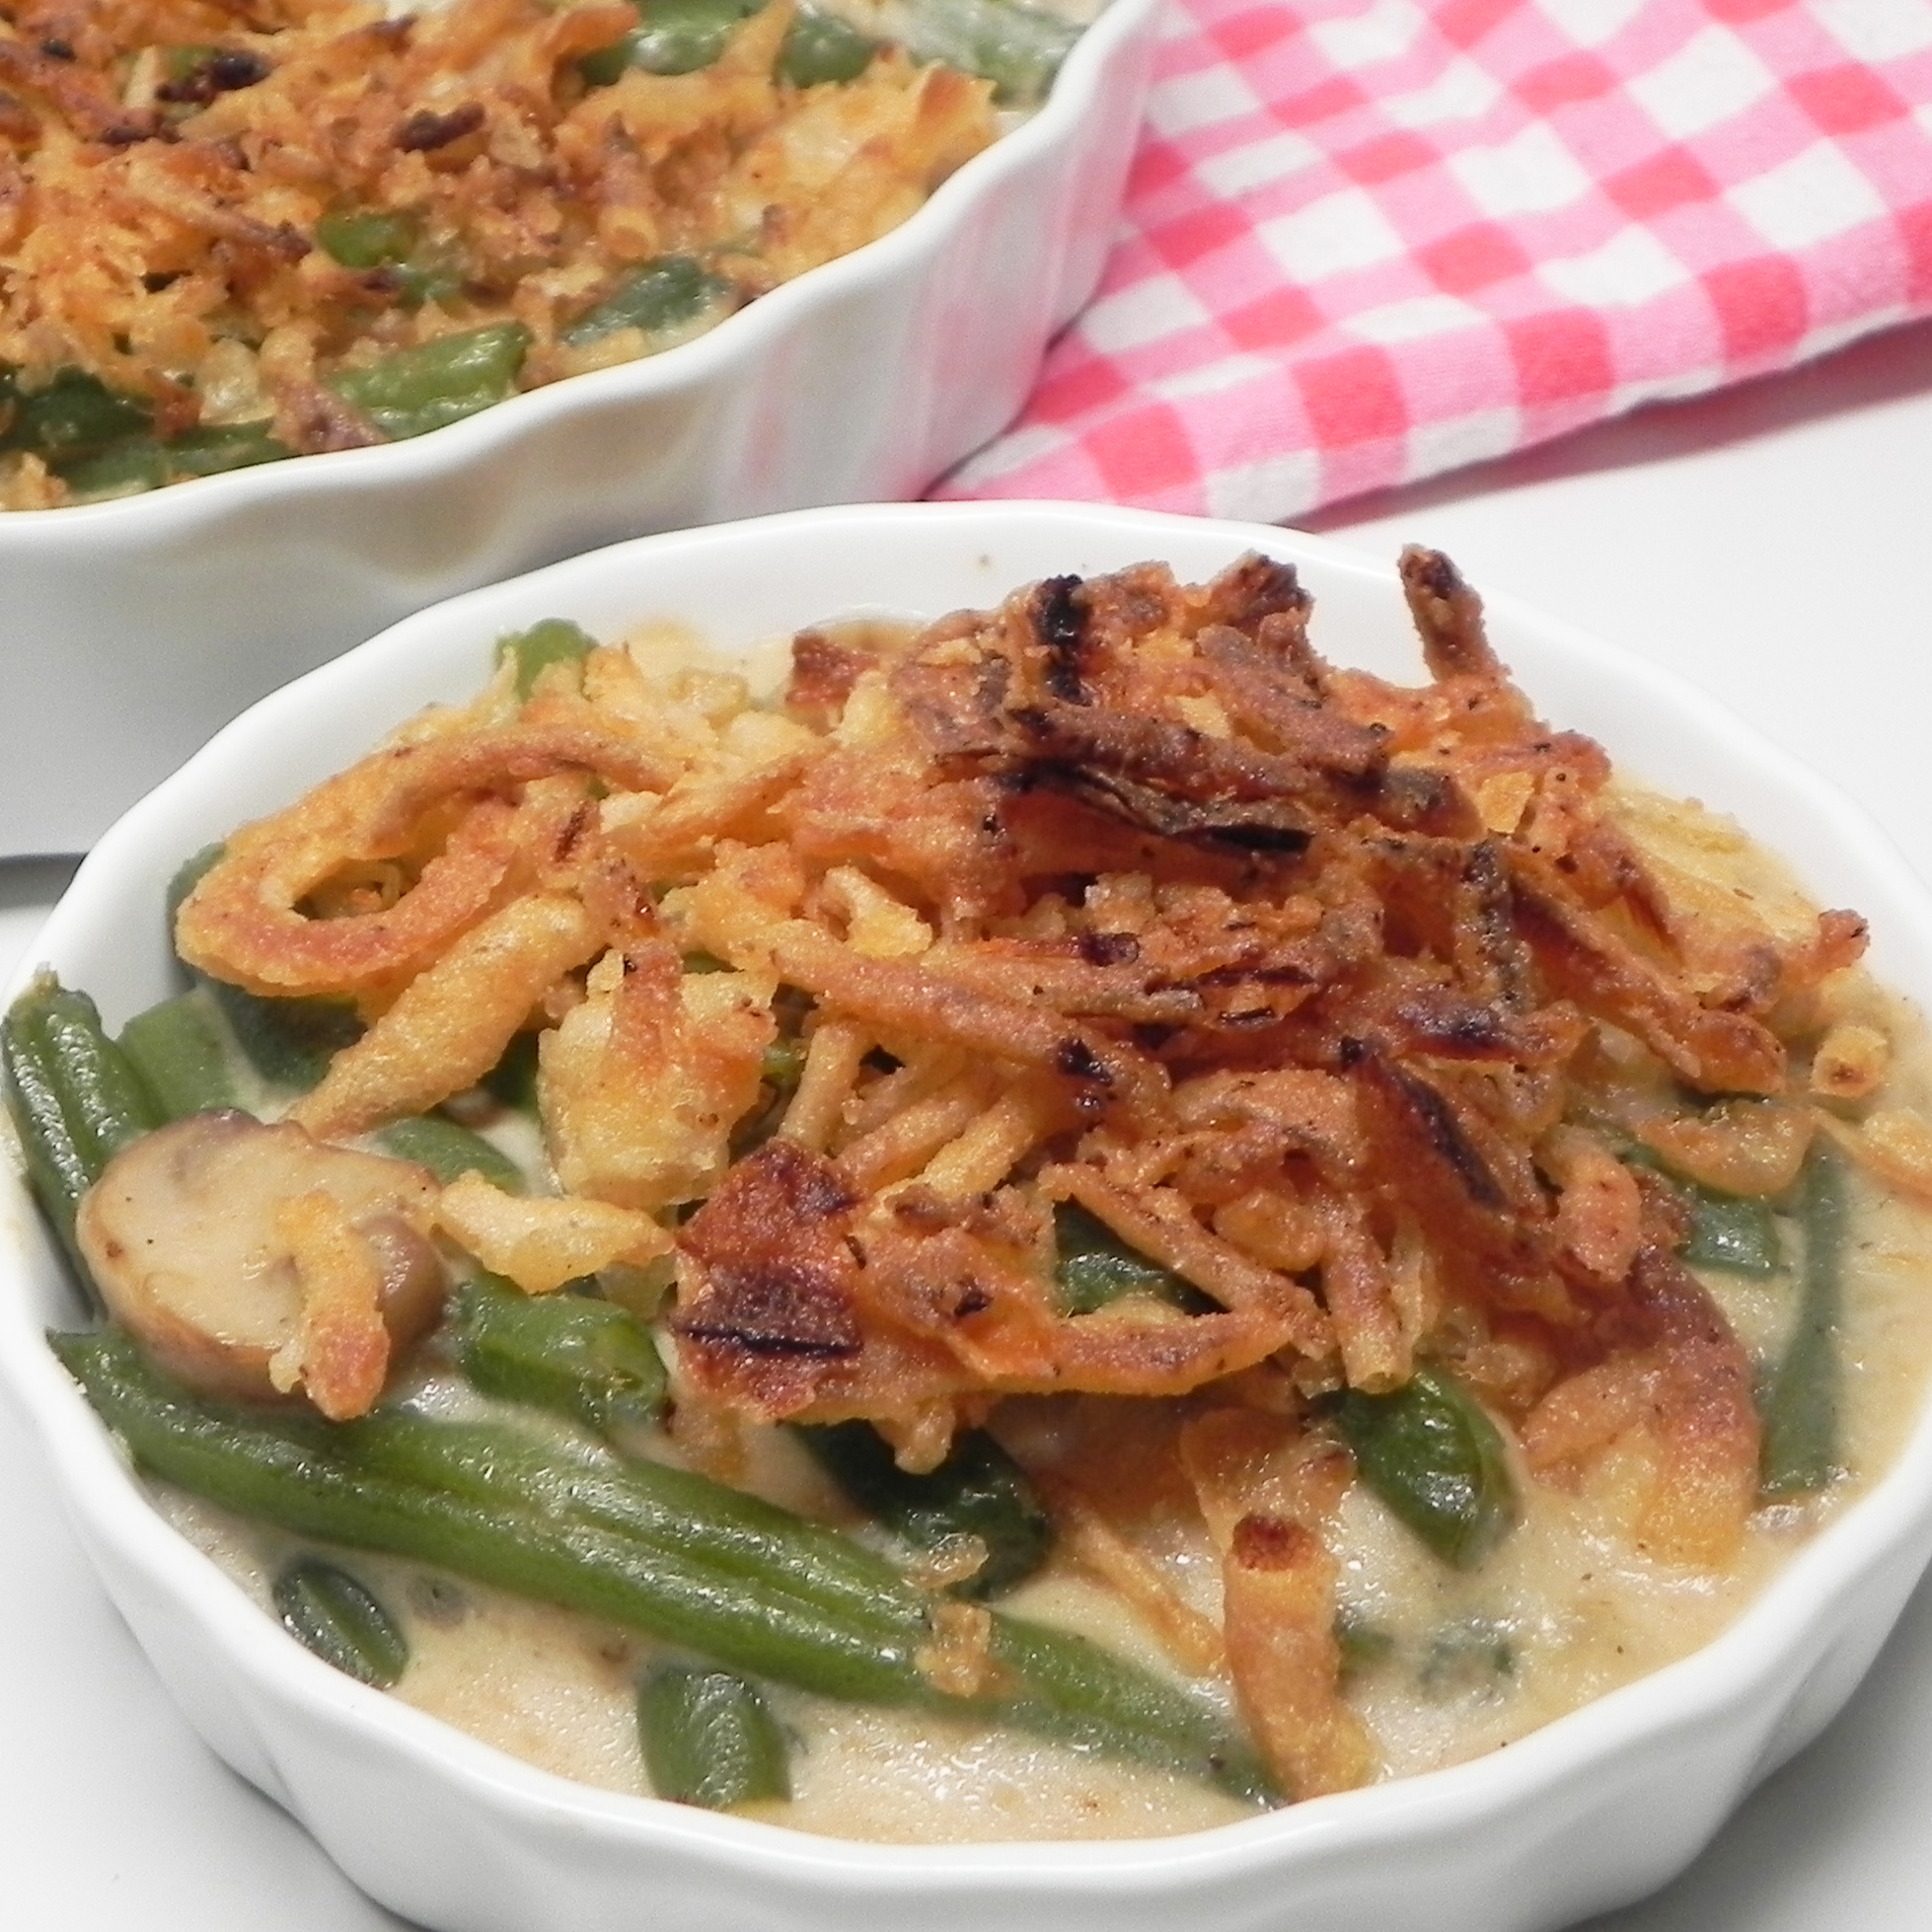 serving of green bean casserole in white bowl